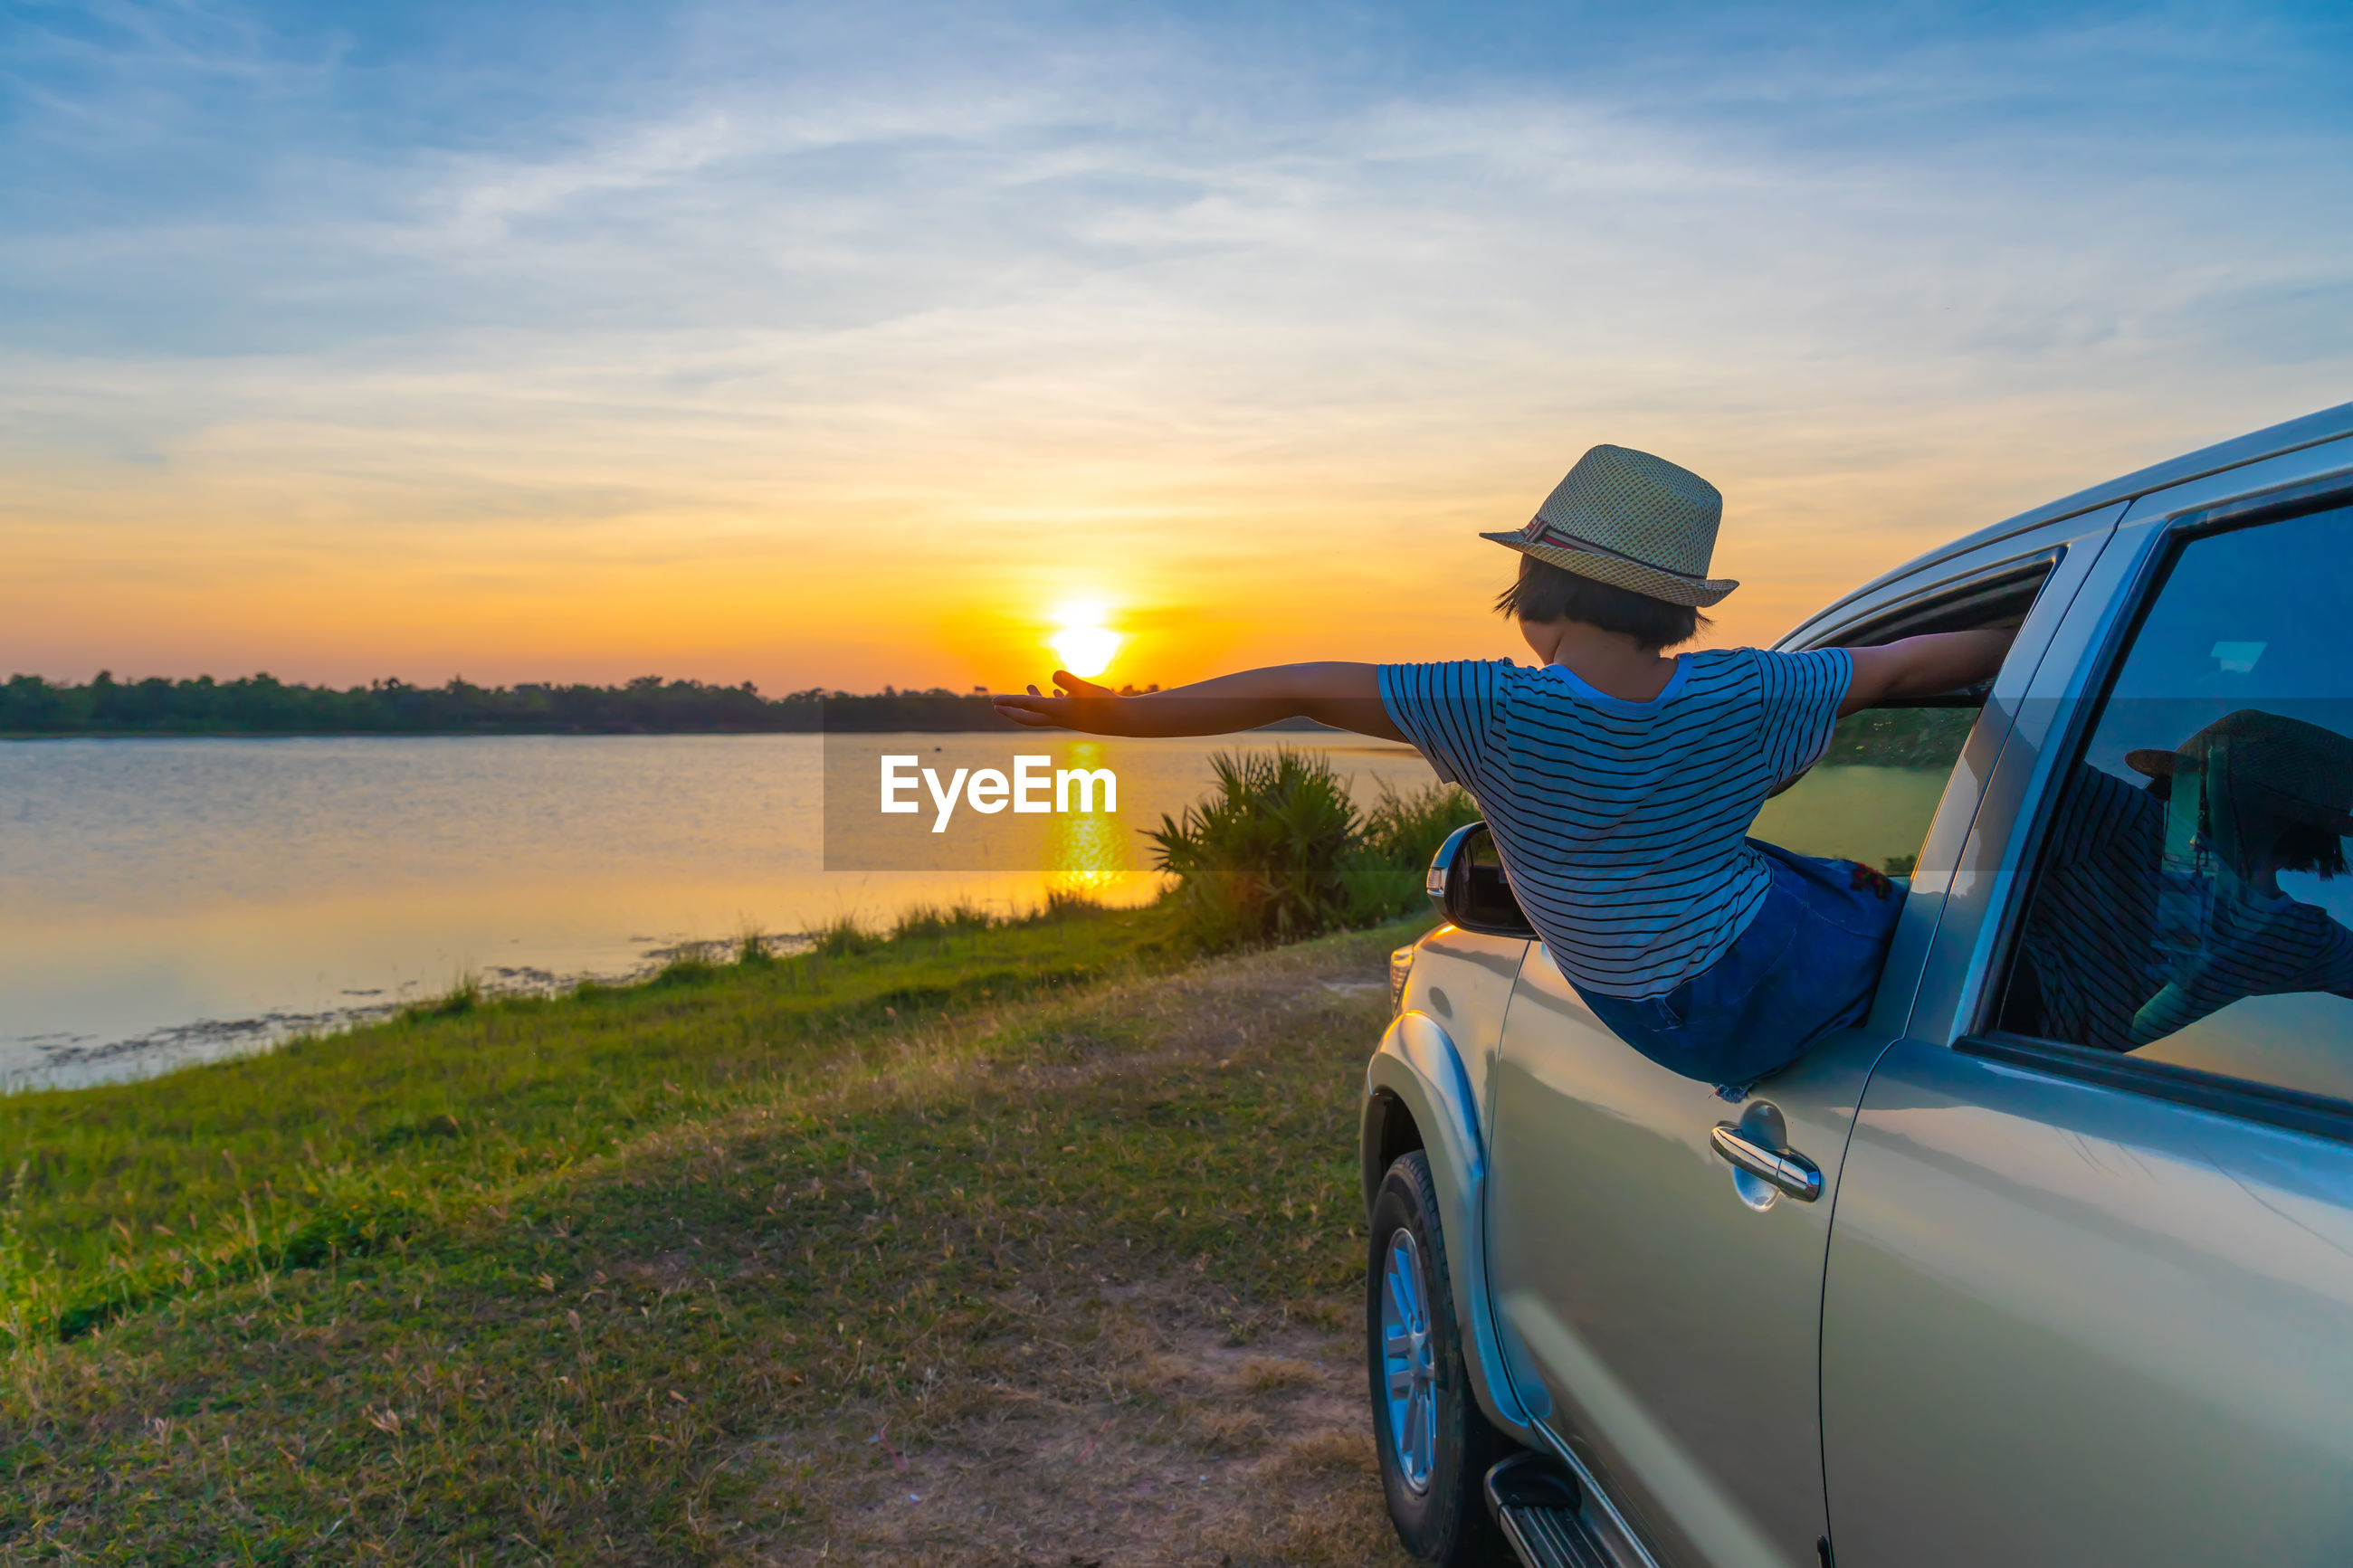 Girl peeking from car window against sky during sunset